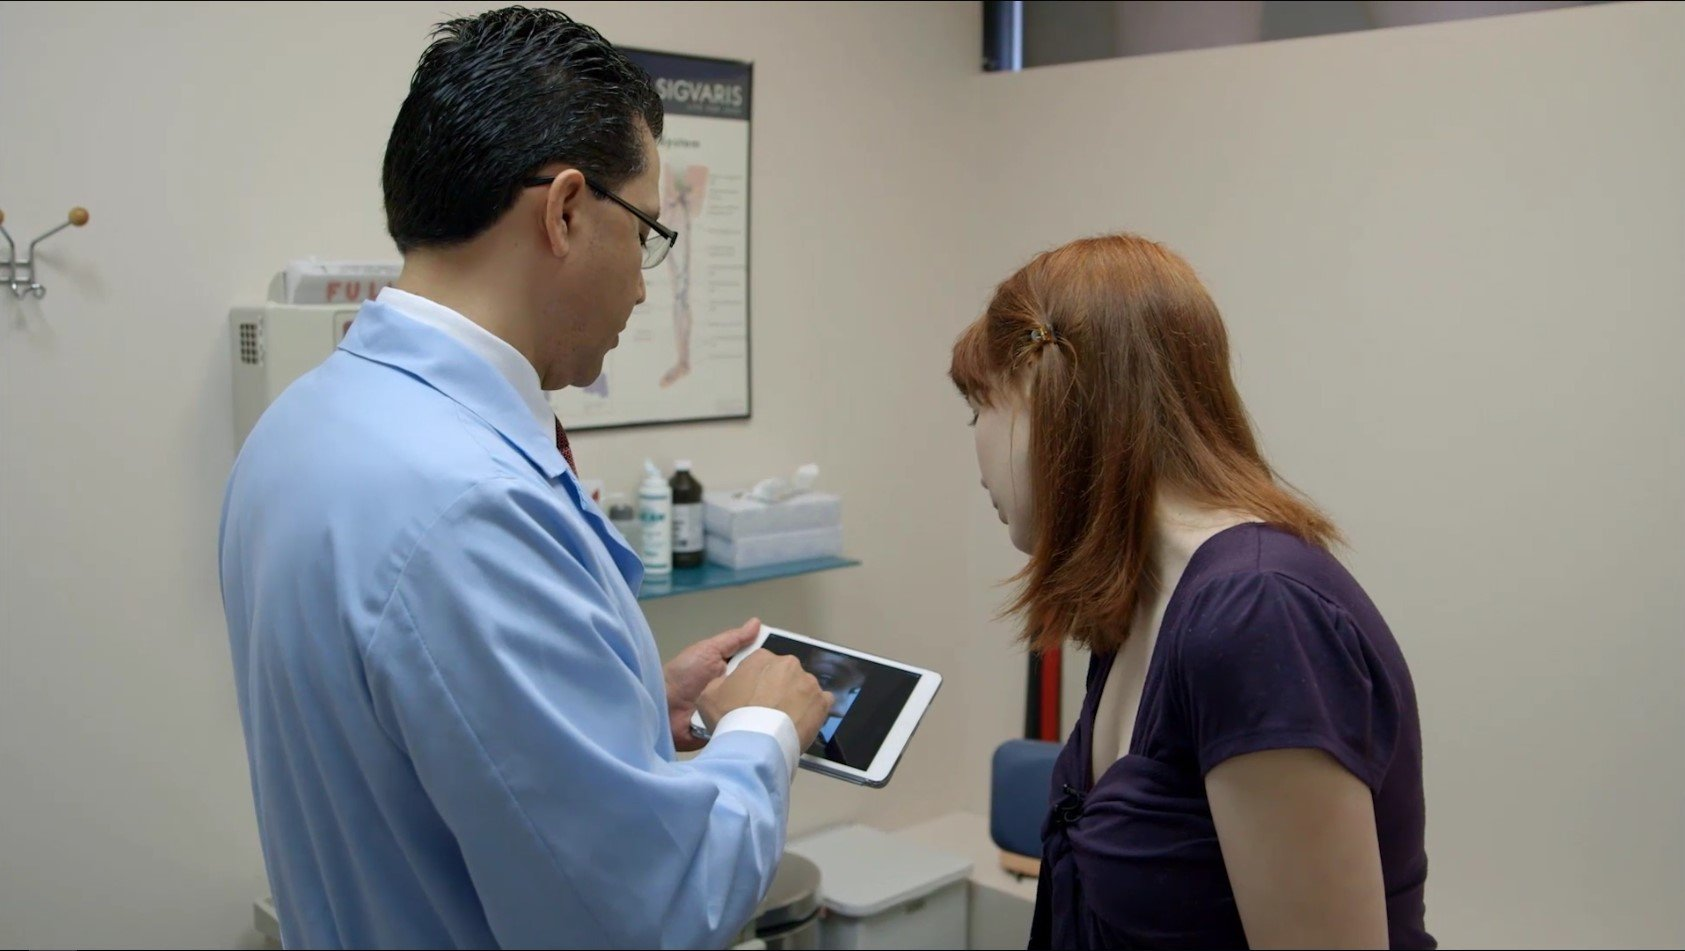 Doctor with patient showing patient photos on iPad